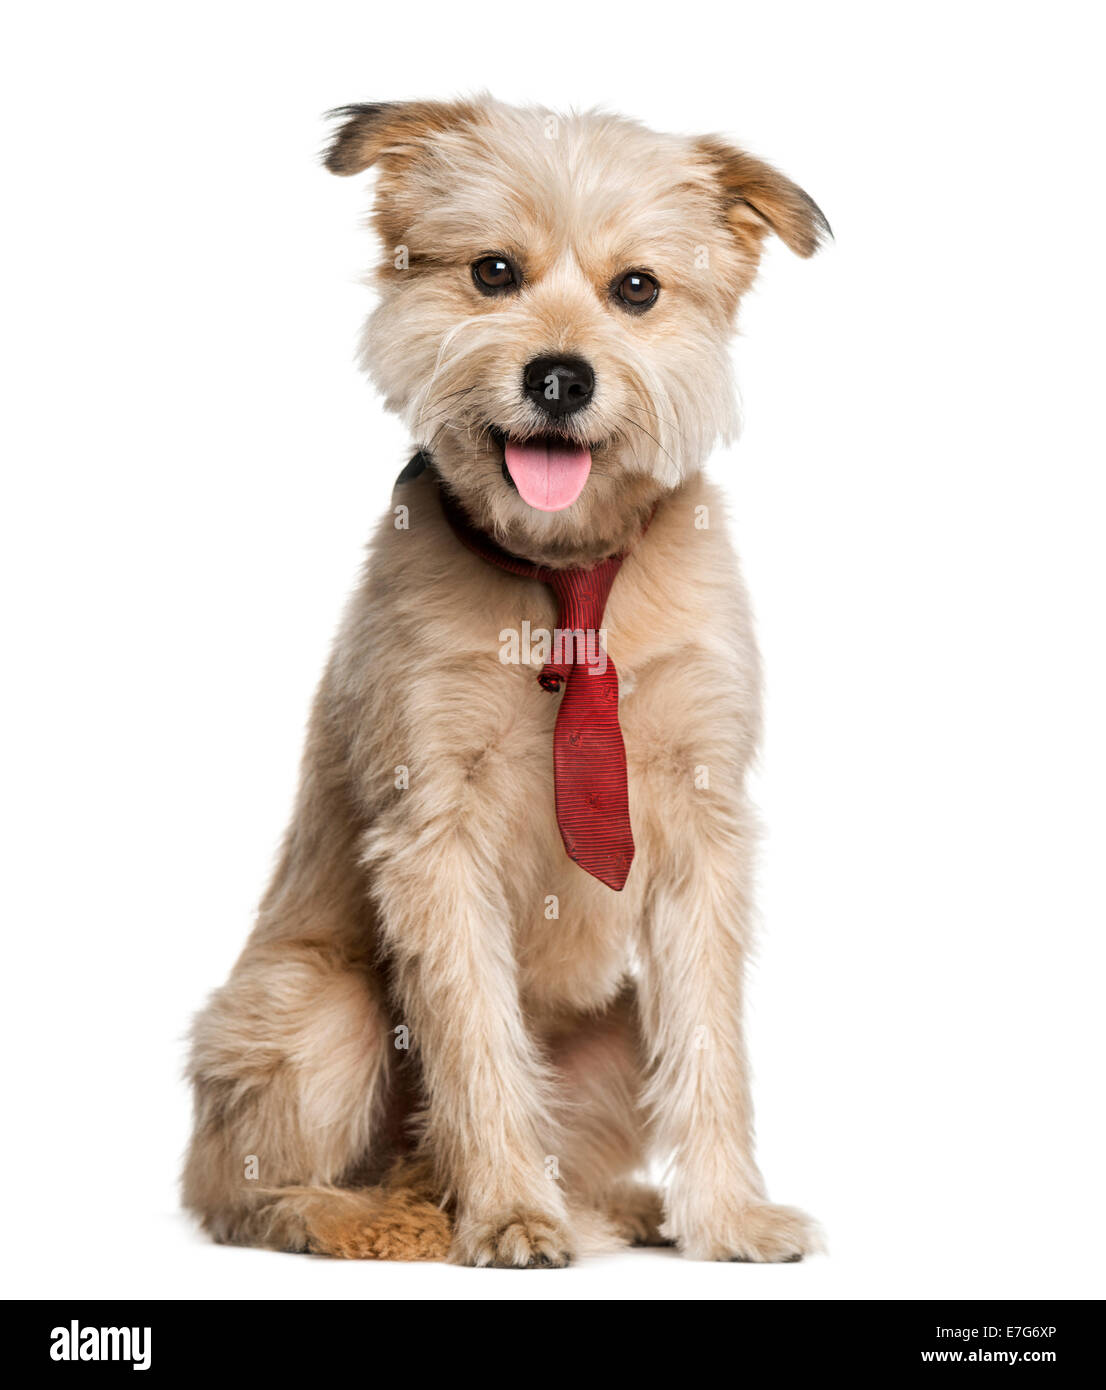 Pyrenean Shepherd wearing a tie (3 years old) against a white background - Stock Image